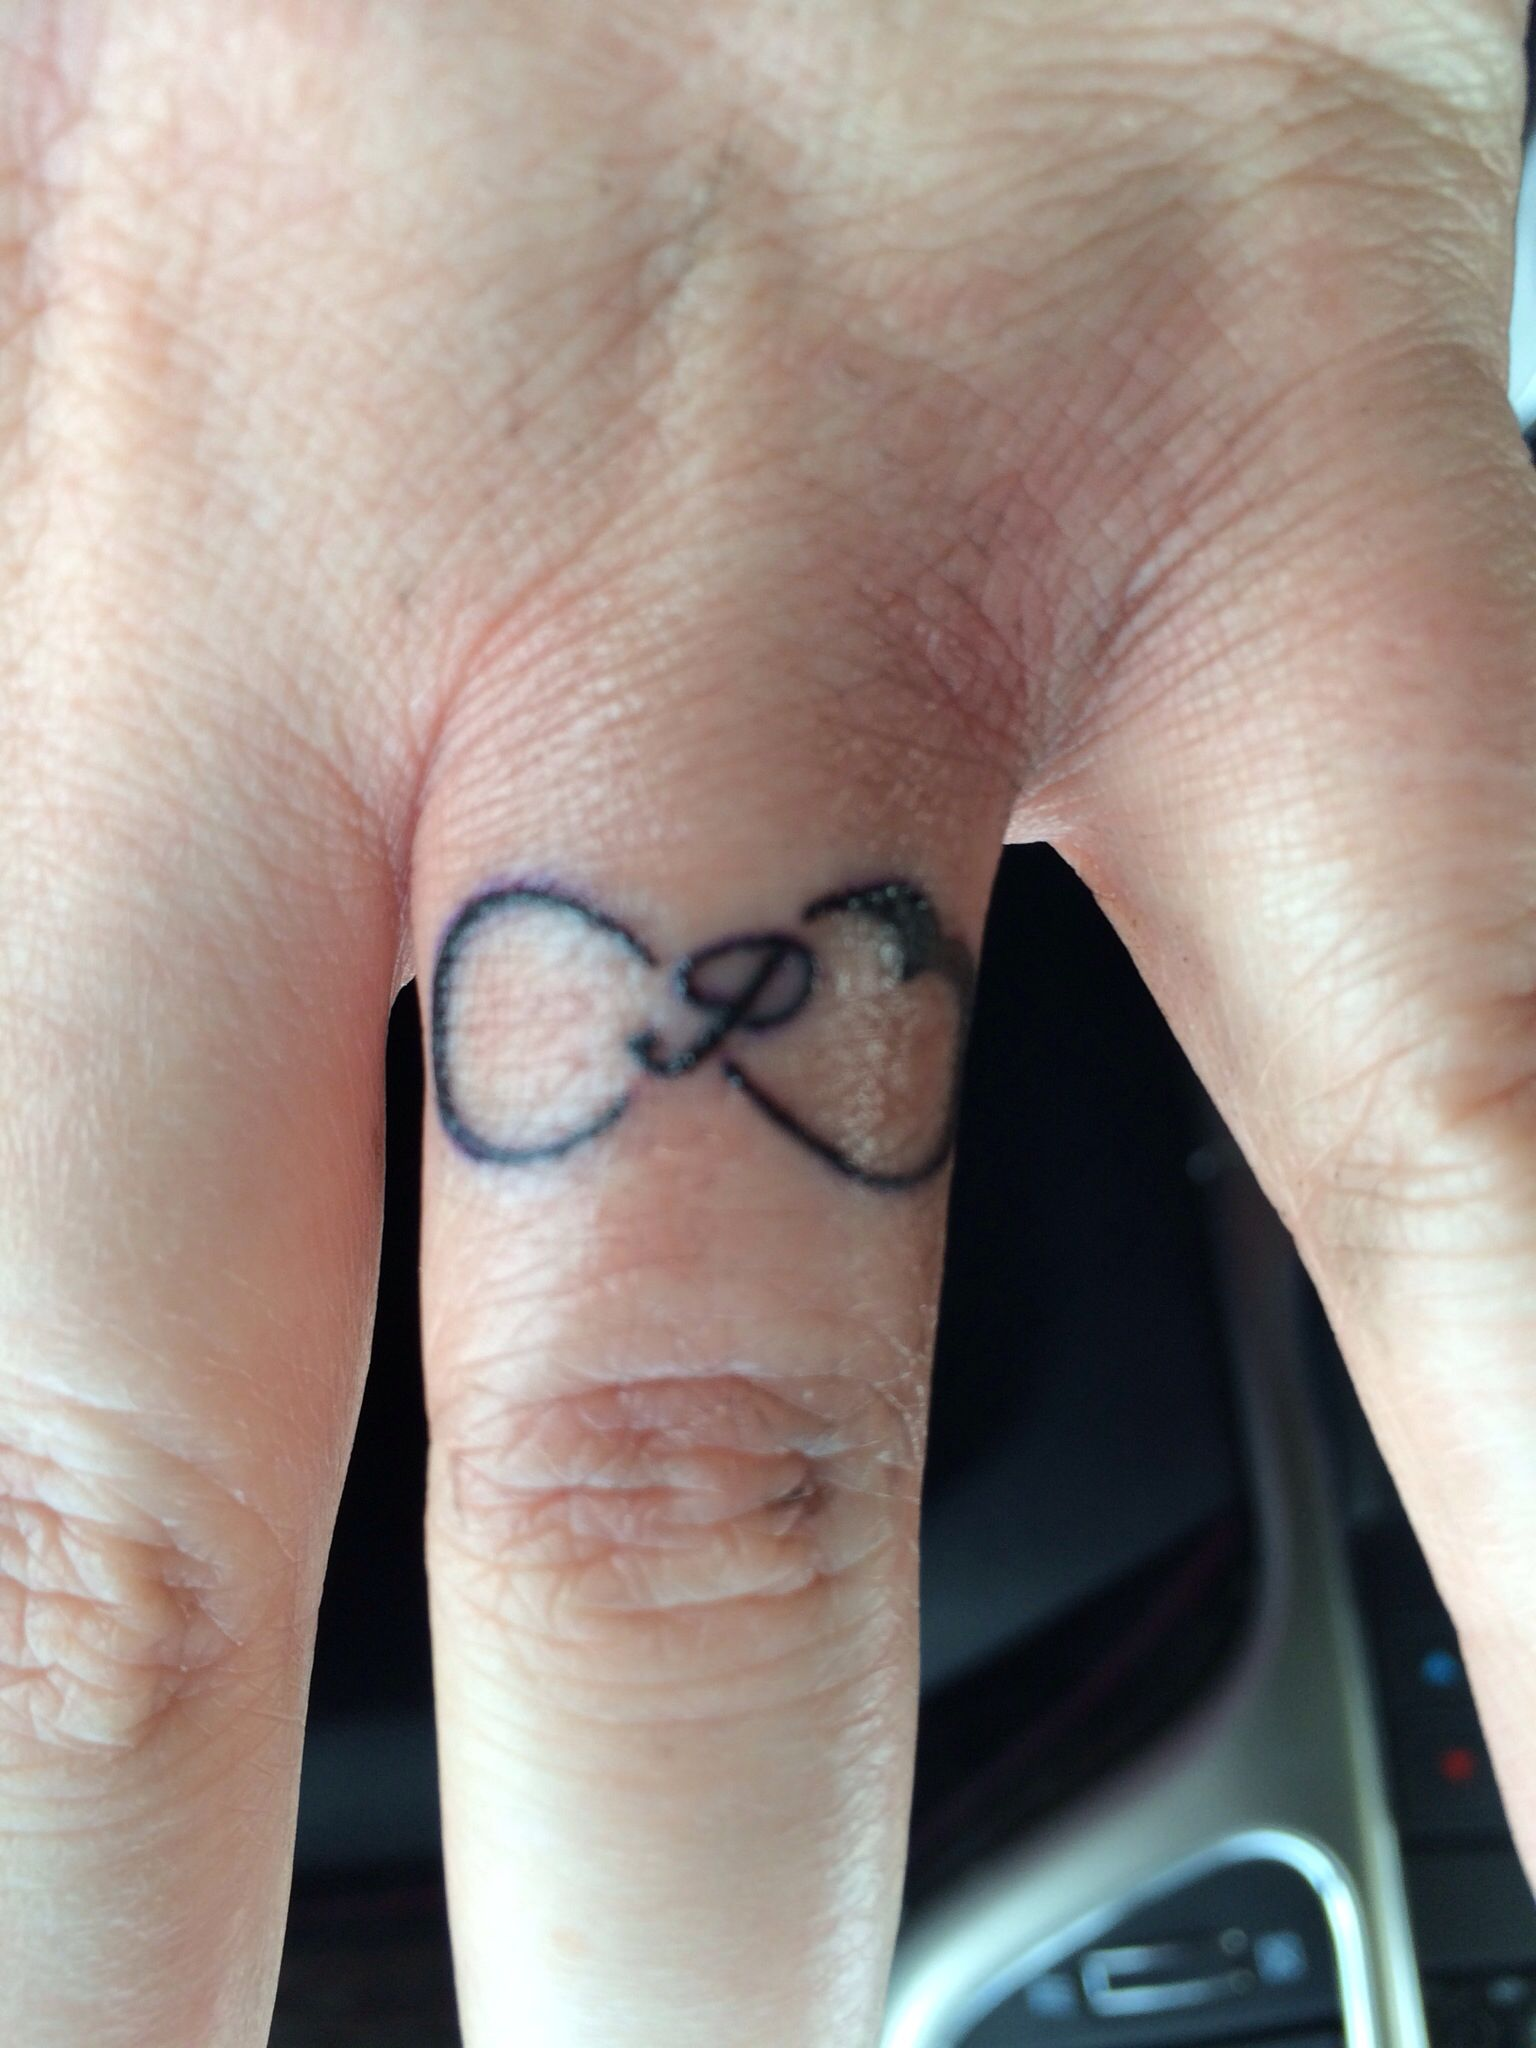 Infinity heart and last name initial ring tattoo I LOVE IT